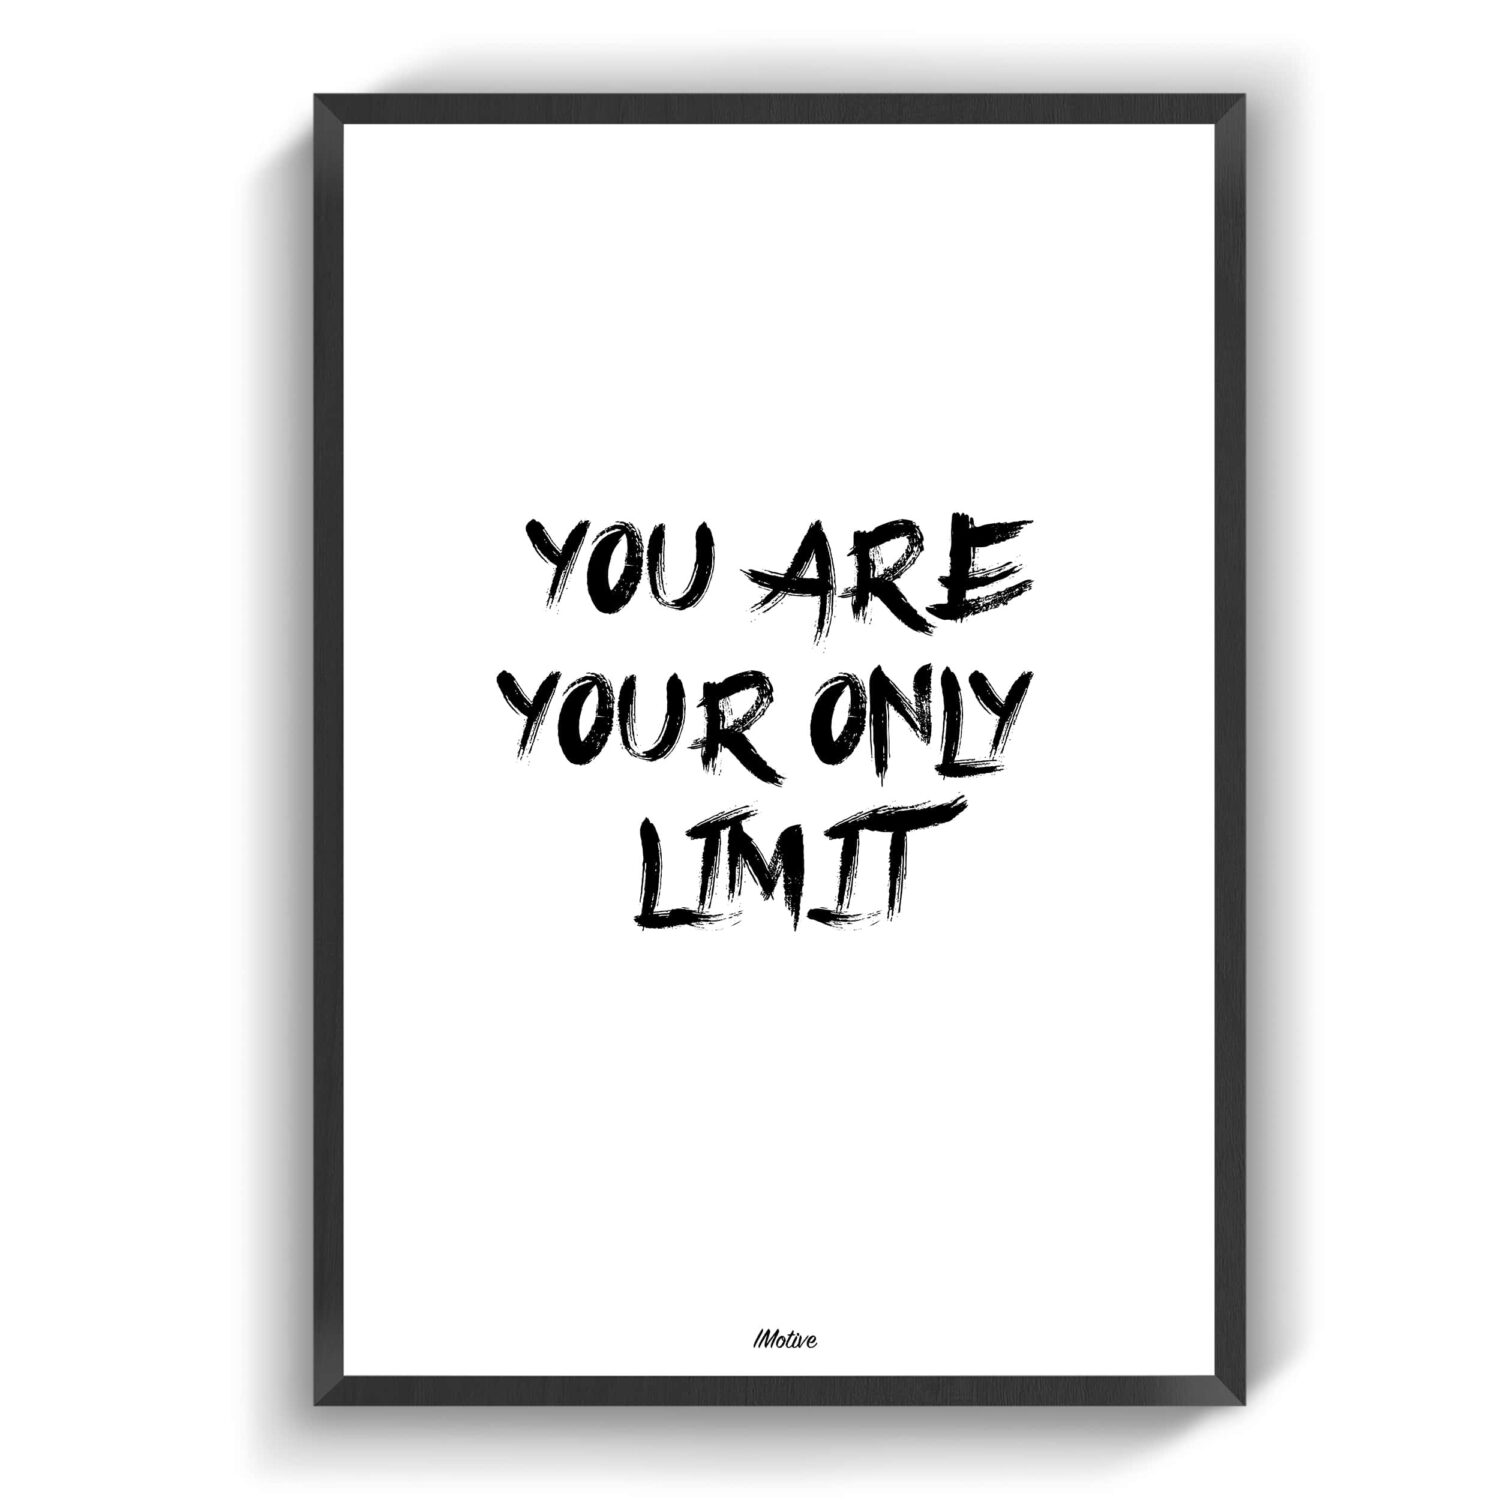 Your only limit